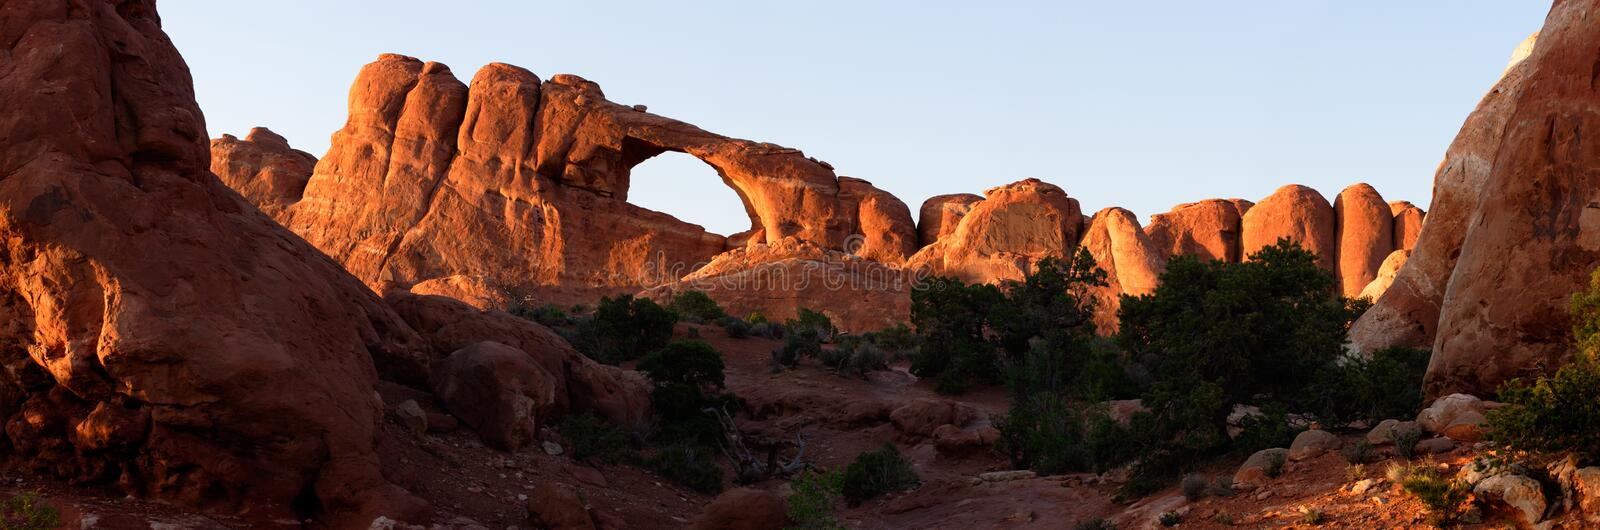 Sunset at Skyline Arch - stitched panorama stock image